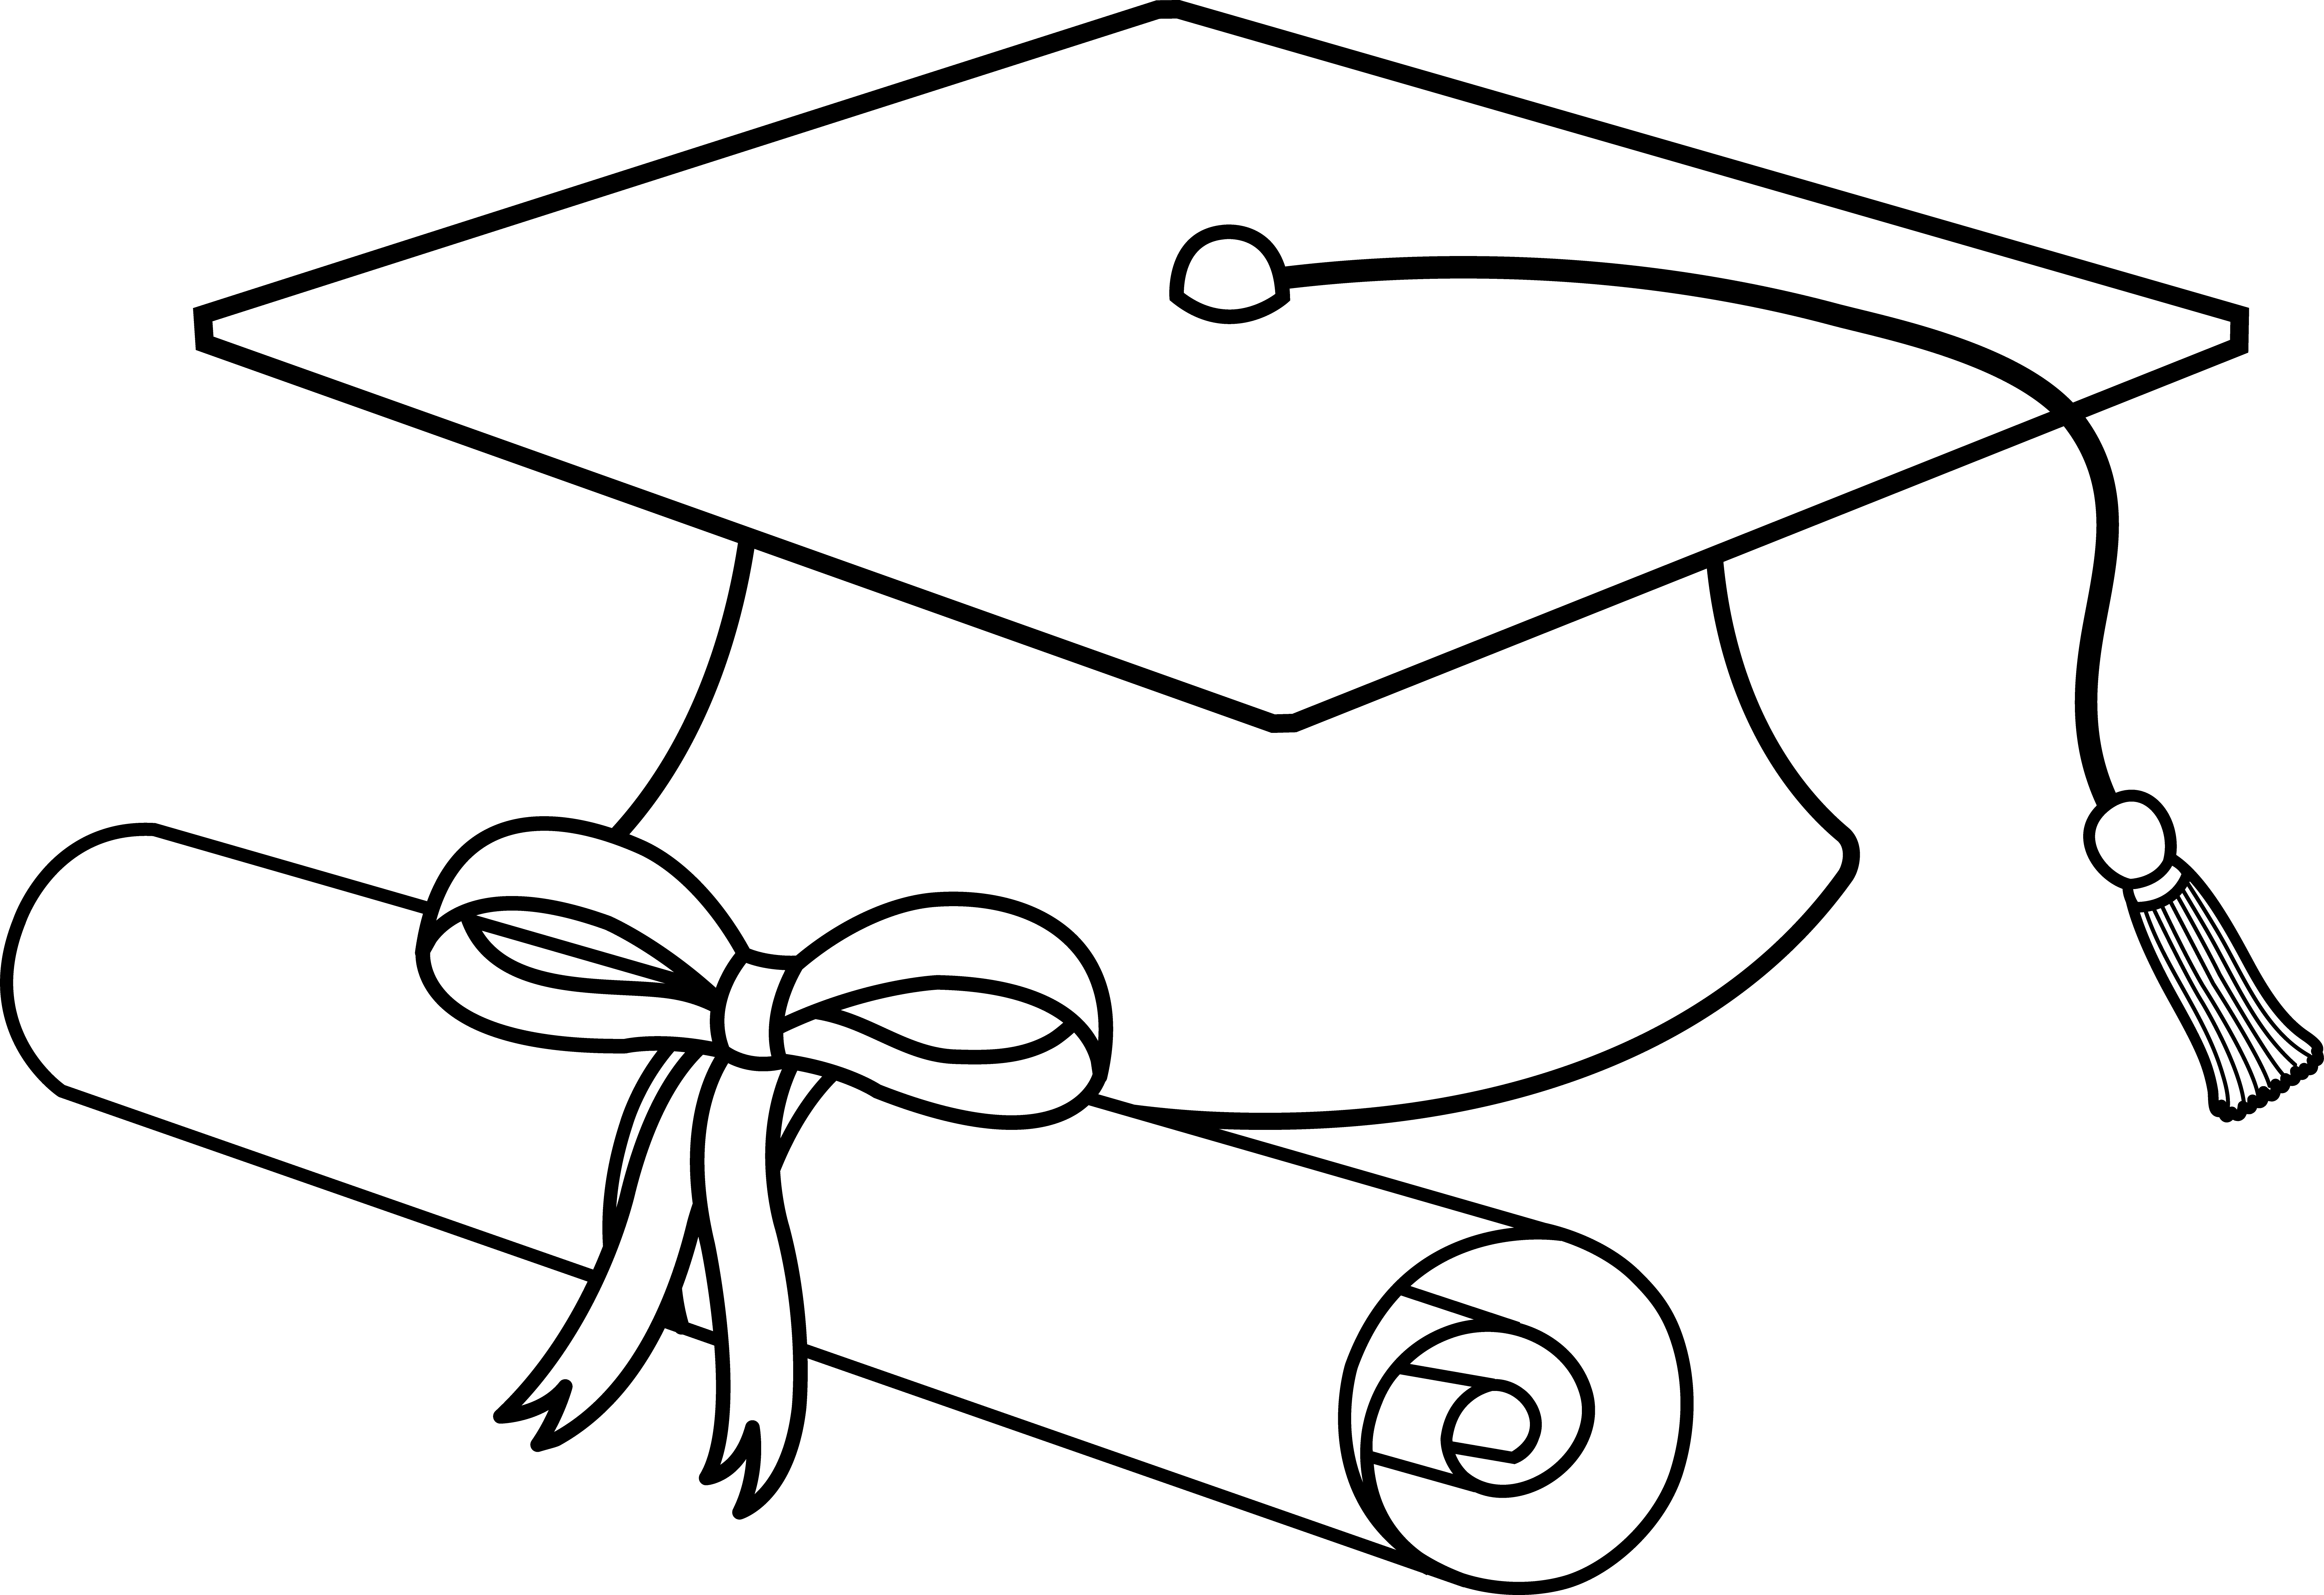 Flying Graduation Caps Clip Art | Graduation Cap Line Art ...